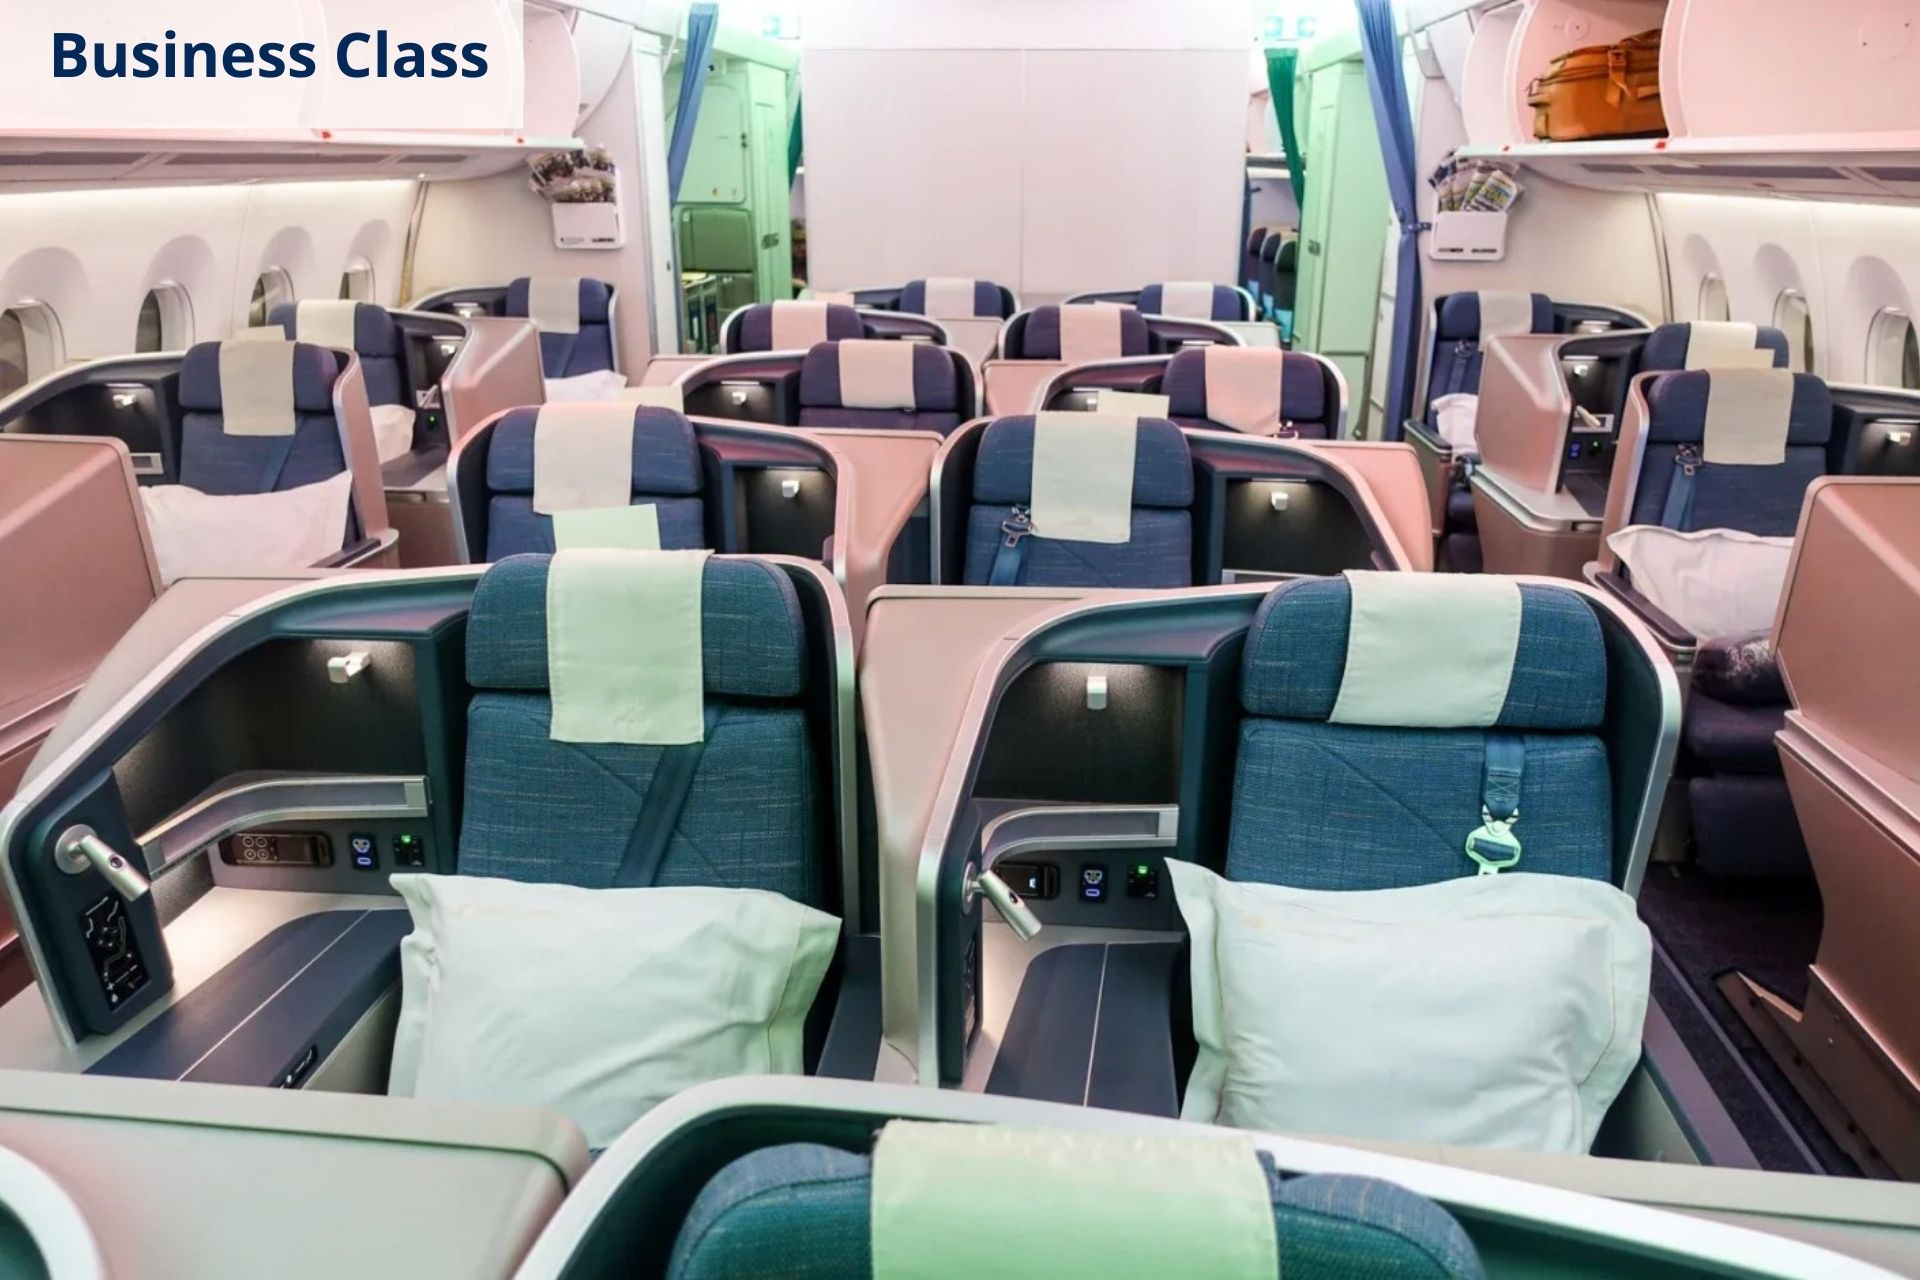 Philippine Airlines business class